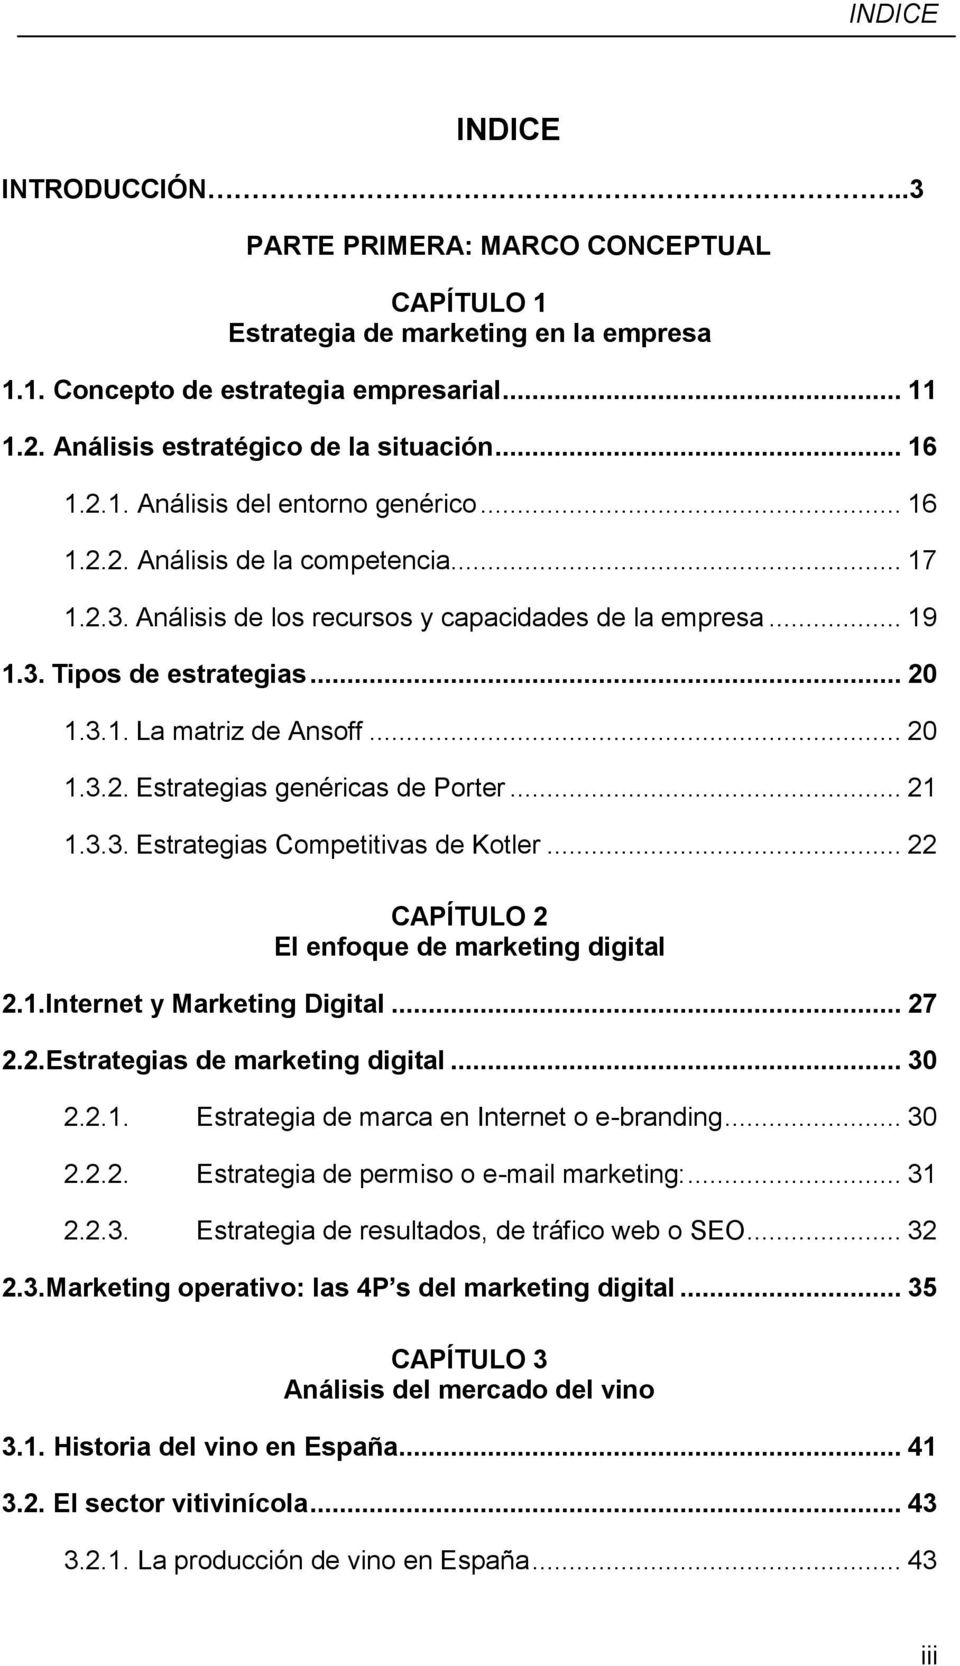 .. 20 1.3.2. Estrategias genéricas de Porter... 21 1.3.3. Estrategias Competitivas de Kotler... 22 CAPÍTULO 2 El enfoque de marketing digital 2.1.Internet y Marketing Digital... 27 2.2.Estrategias de marketing digital.